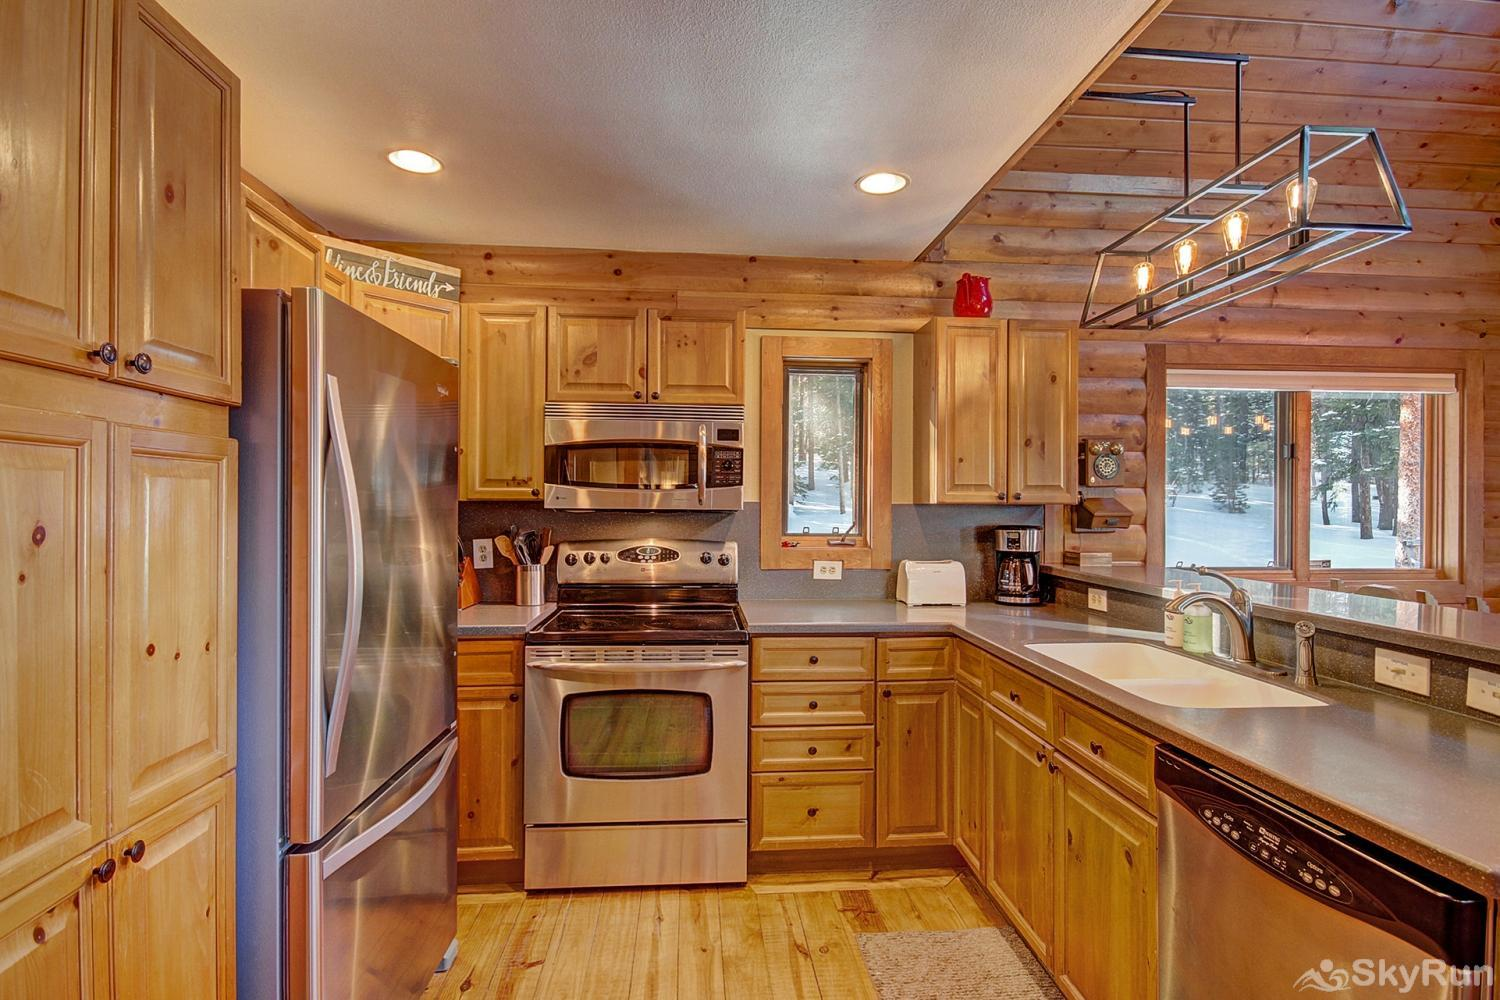 The Sly Fox Hideaway Fully equipped kitchen updated with modern appliances